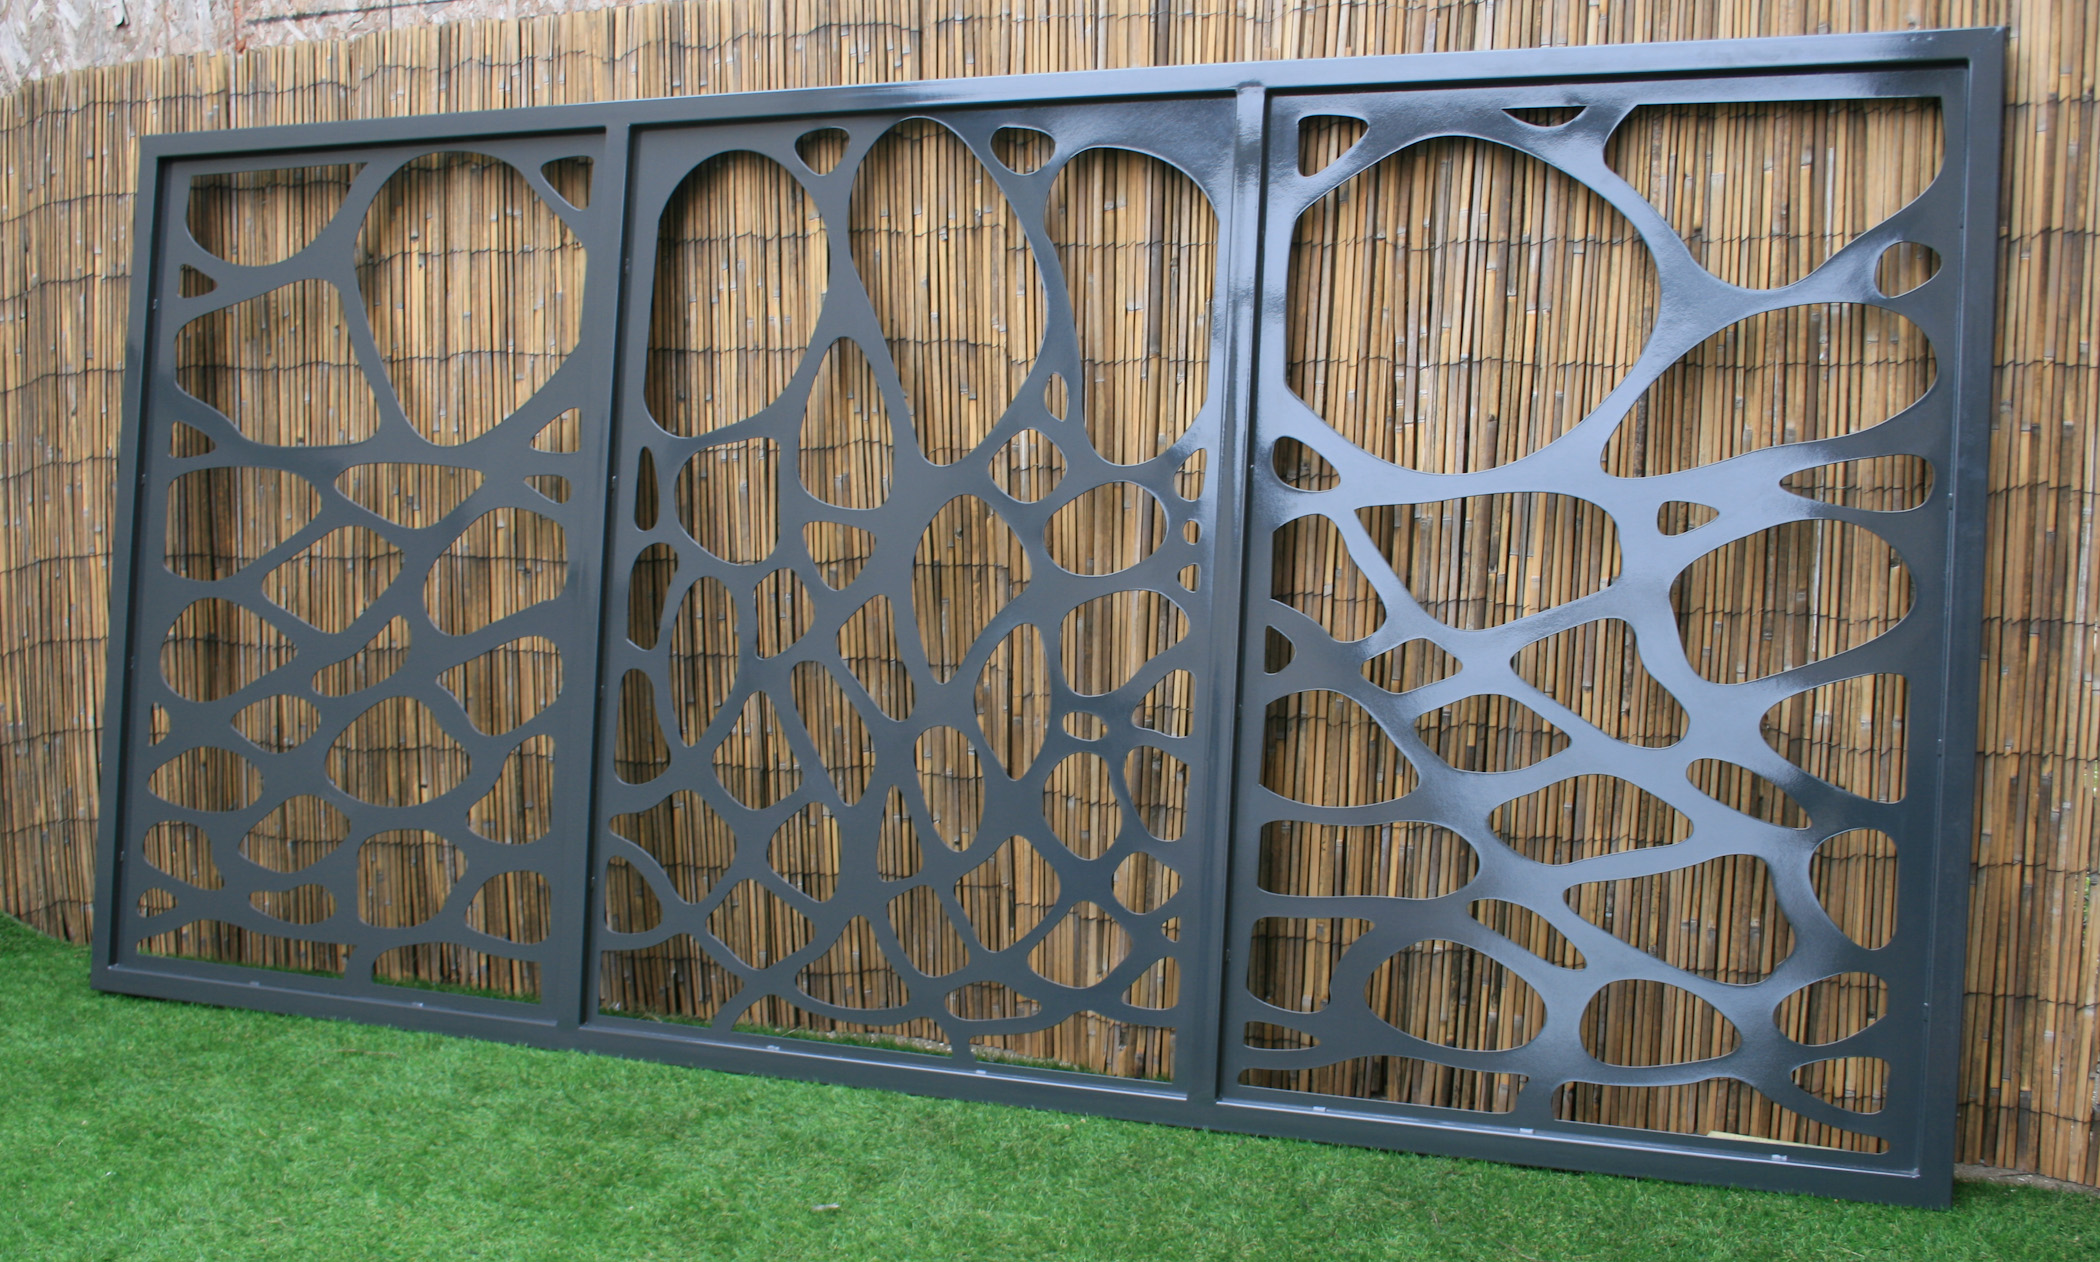 Artistic Steel Driveway Gate - Antoni Gaudi - Decorative Steel - Modernist